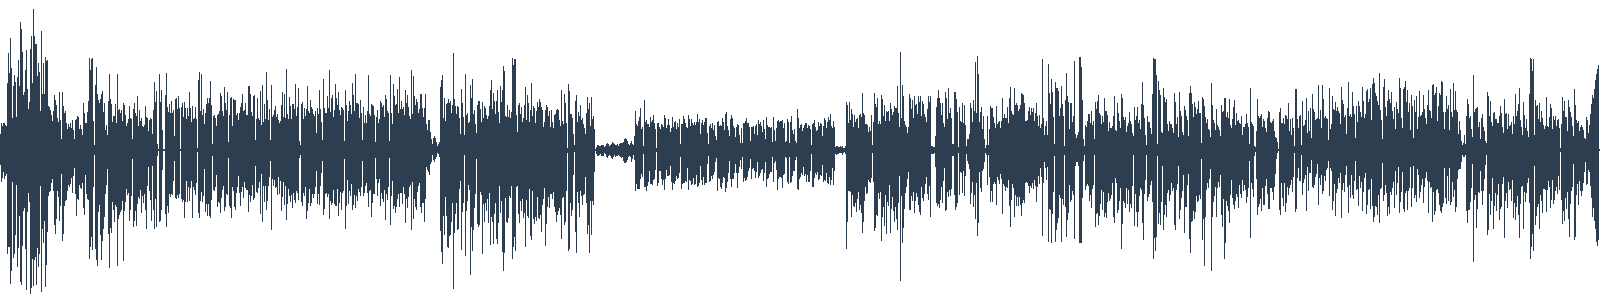 Frankenstein (Audiokniha roku 2016) waveform